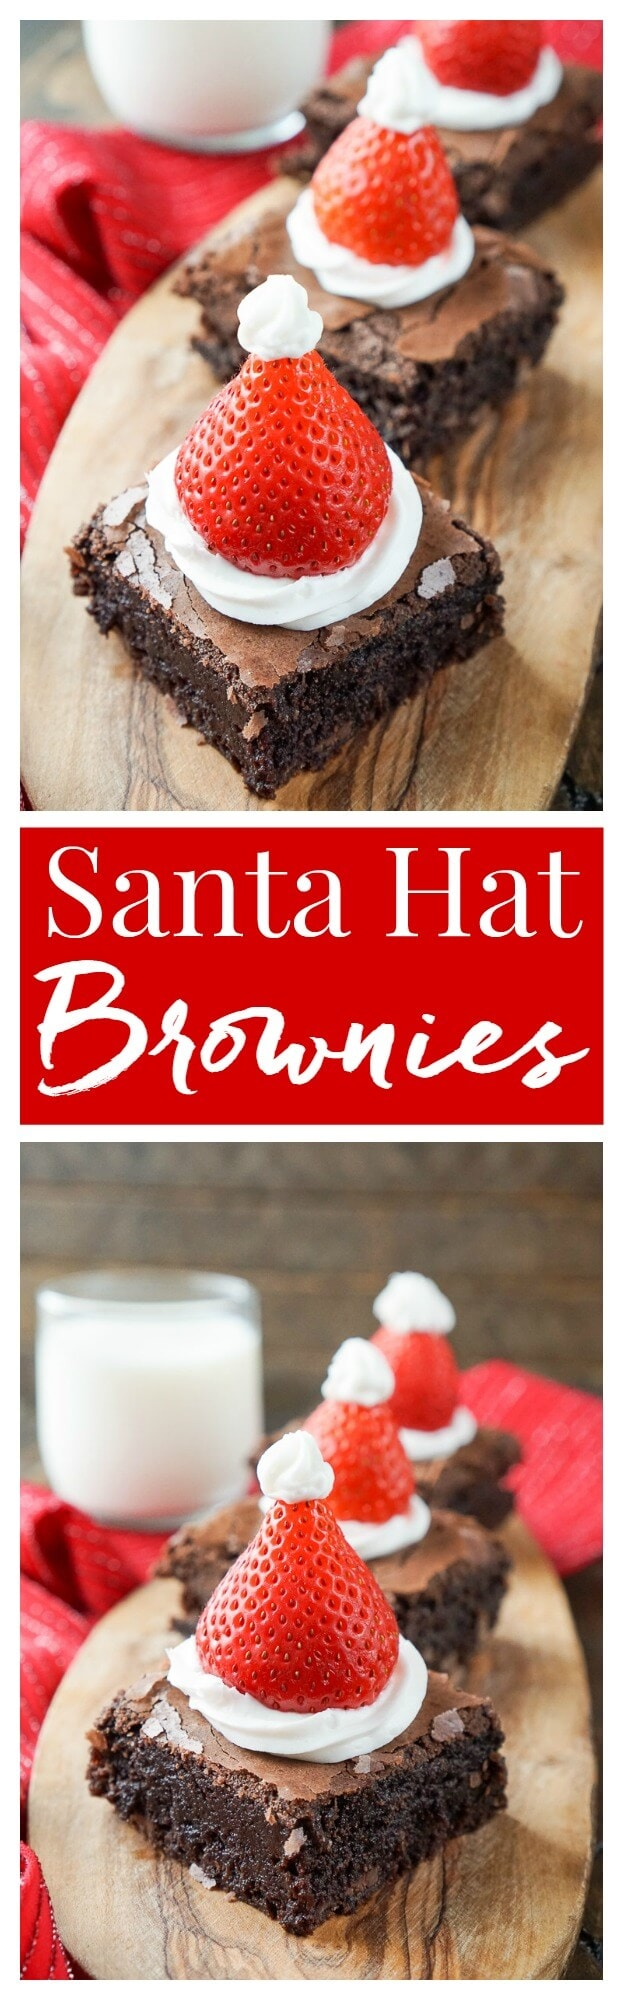 These Santa Hat Brownies are a simple and festive rich chocolate dessert the whole family will love!